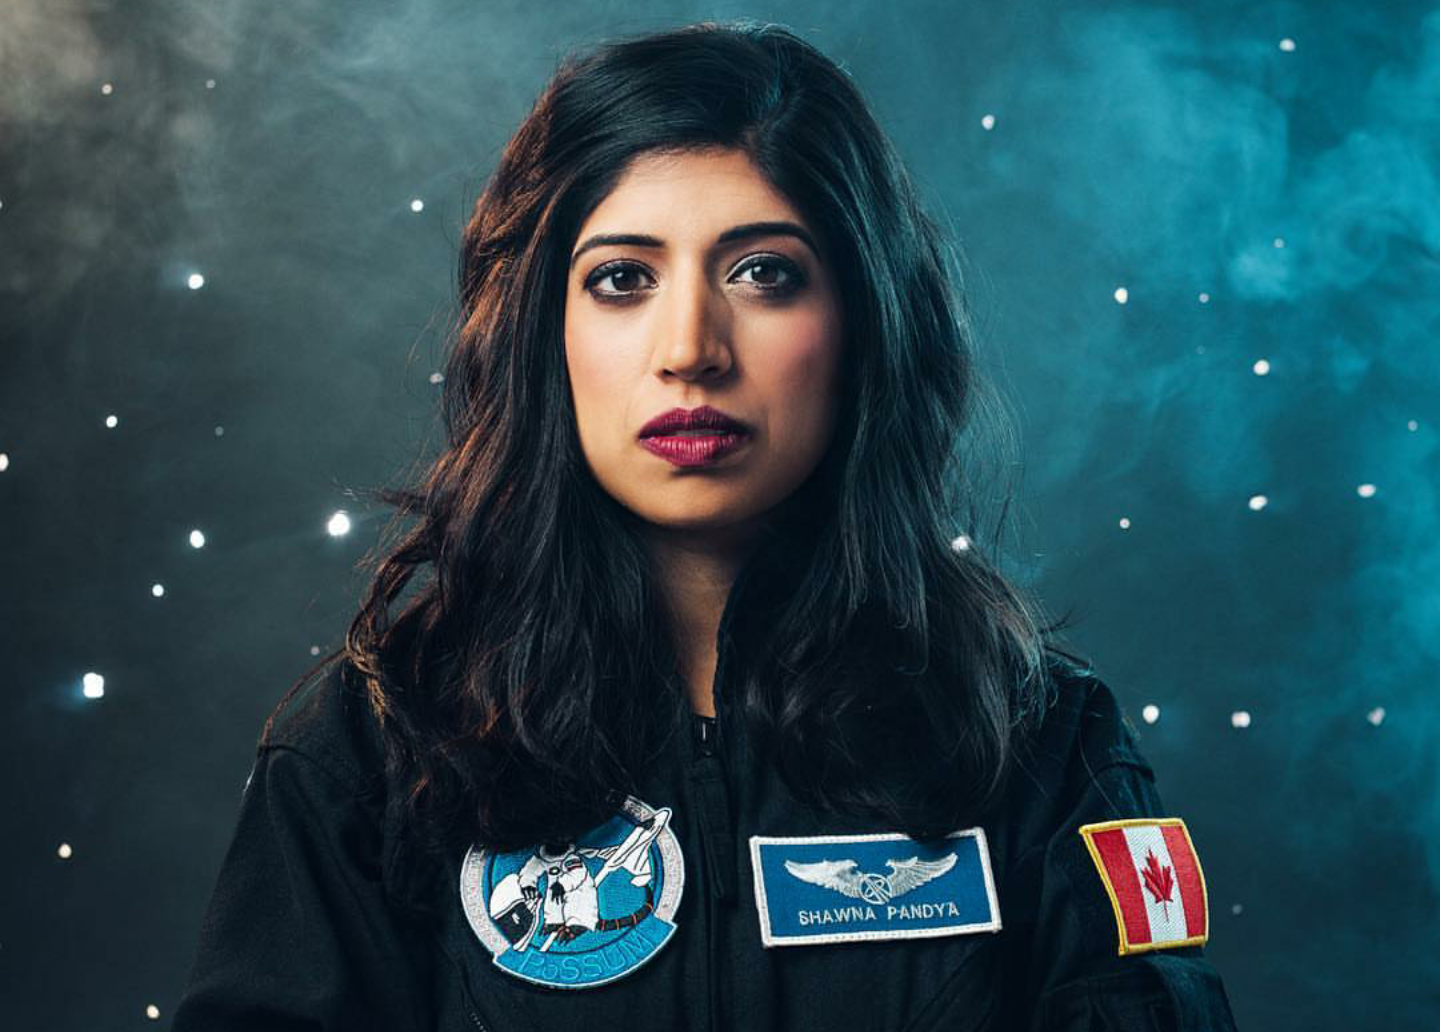 Dr. Shawna Pandya, Physician, Astronaut, Black Belt, Entrepreneur   Dr. Shawna Pandya is a physician, speaker, martial artist, citizen-scientist astronaut candidate with Projects PoSSUM & PHEnOM , and prime crew aquanaut with Project Poseidon . She holds degrees in in neuroscience (BSc Hons.Neuroscience, University of Alberta), space (MSc Space Studies, International Space University), entrepreneurship (Graduate Studies Program, Singularity University) and medicine (MD, University of Alberta), and is currently completing a fellowship in Wilderness Medicine.